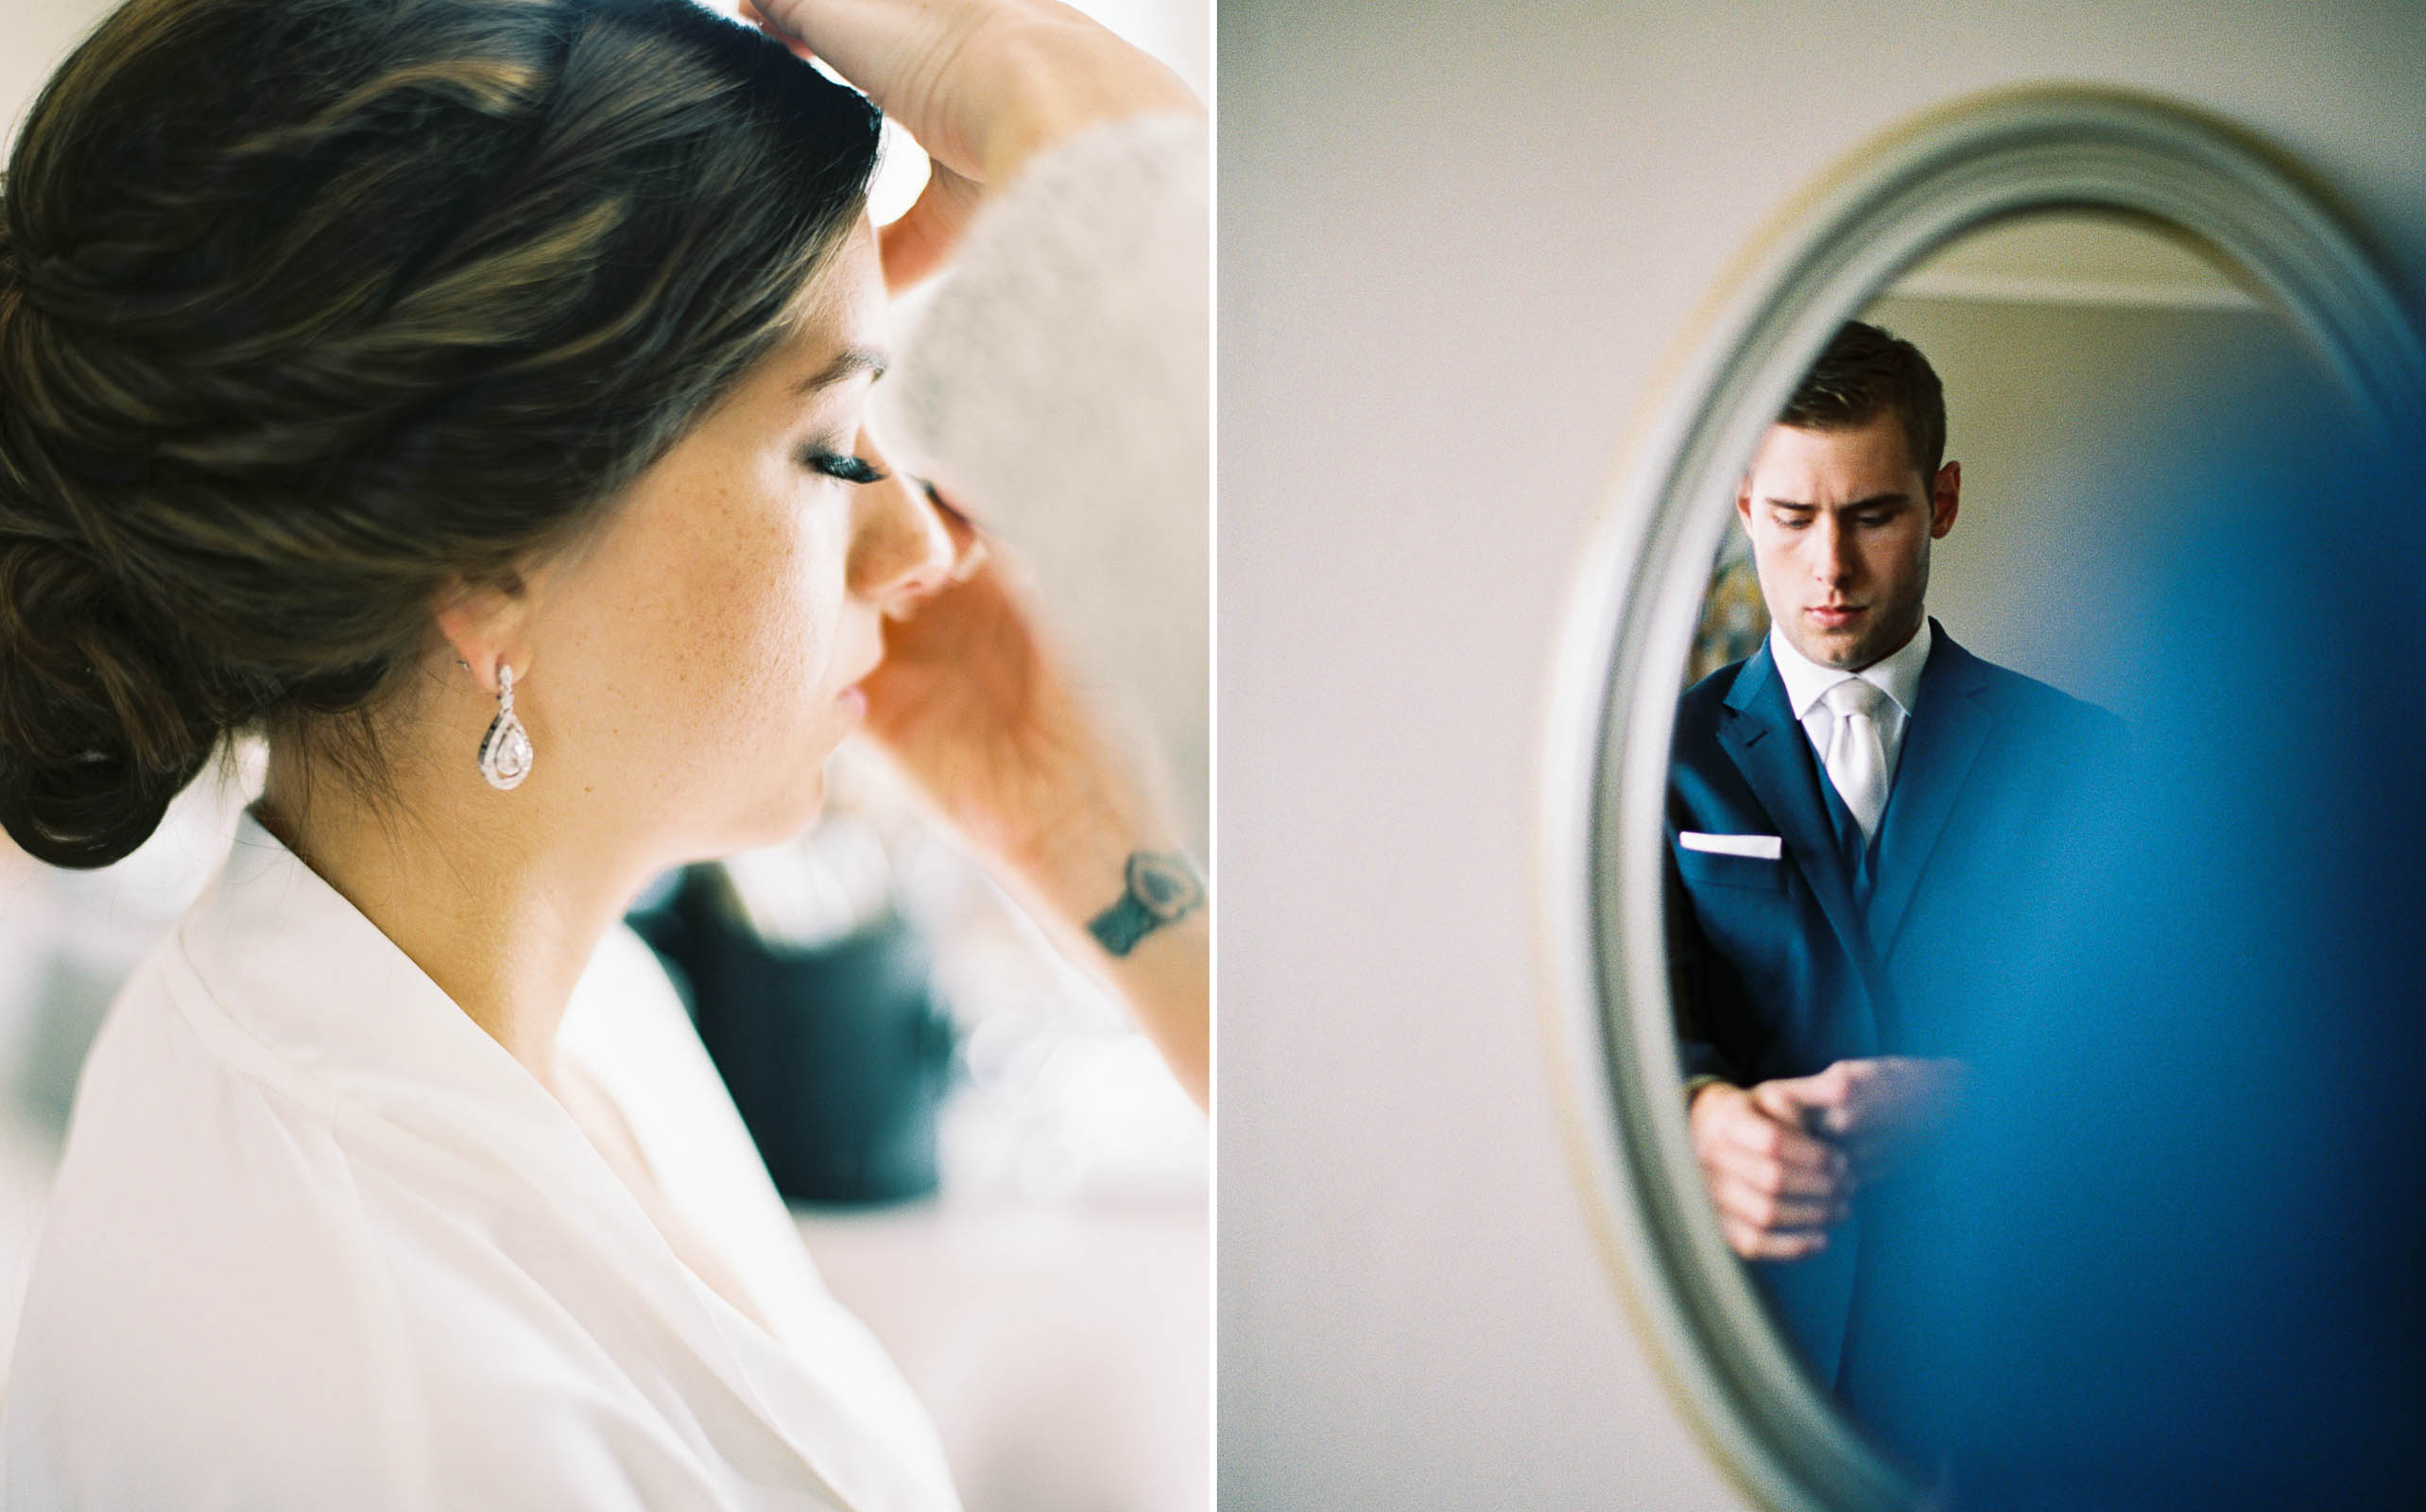 Bride and Groom get ready for their wedding at Lord Hill Farms